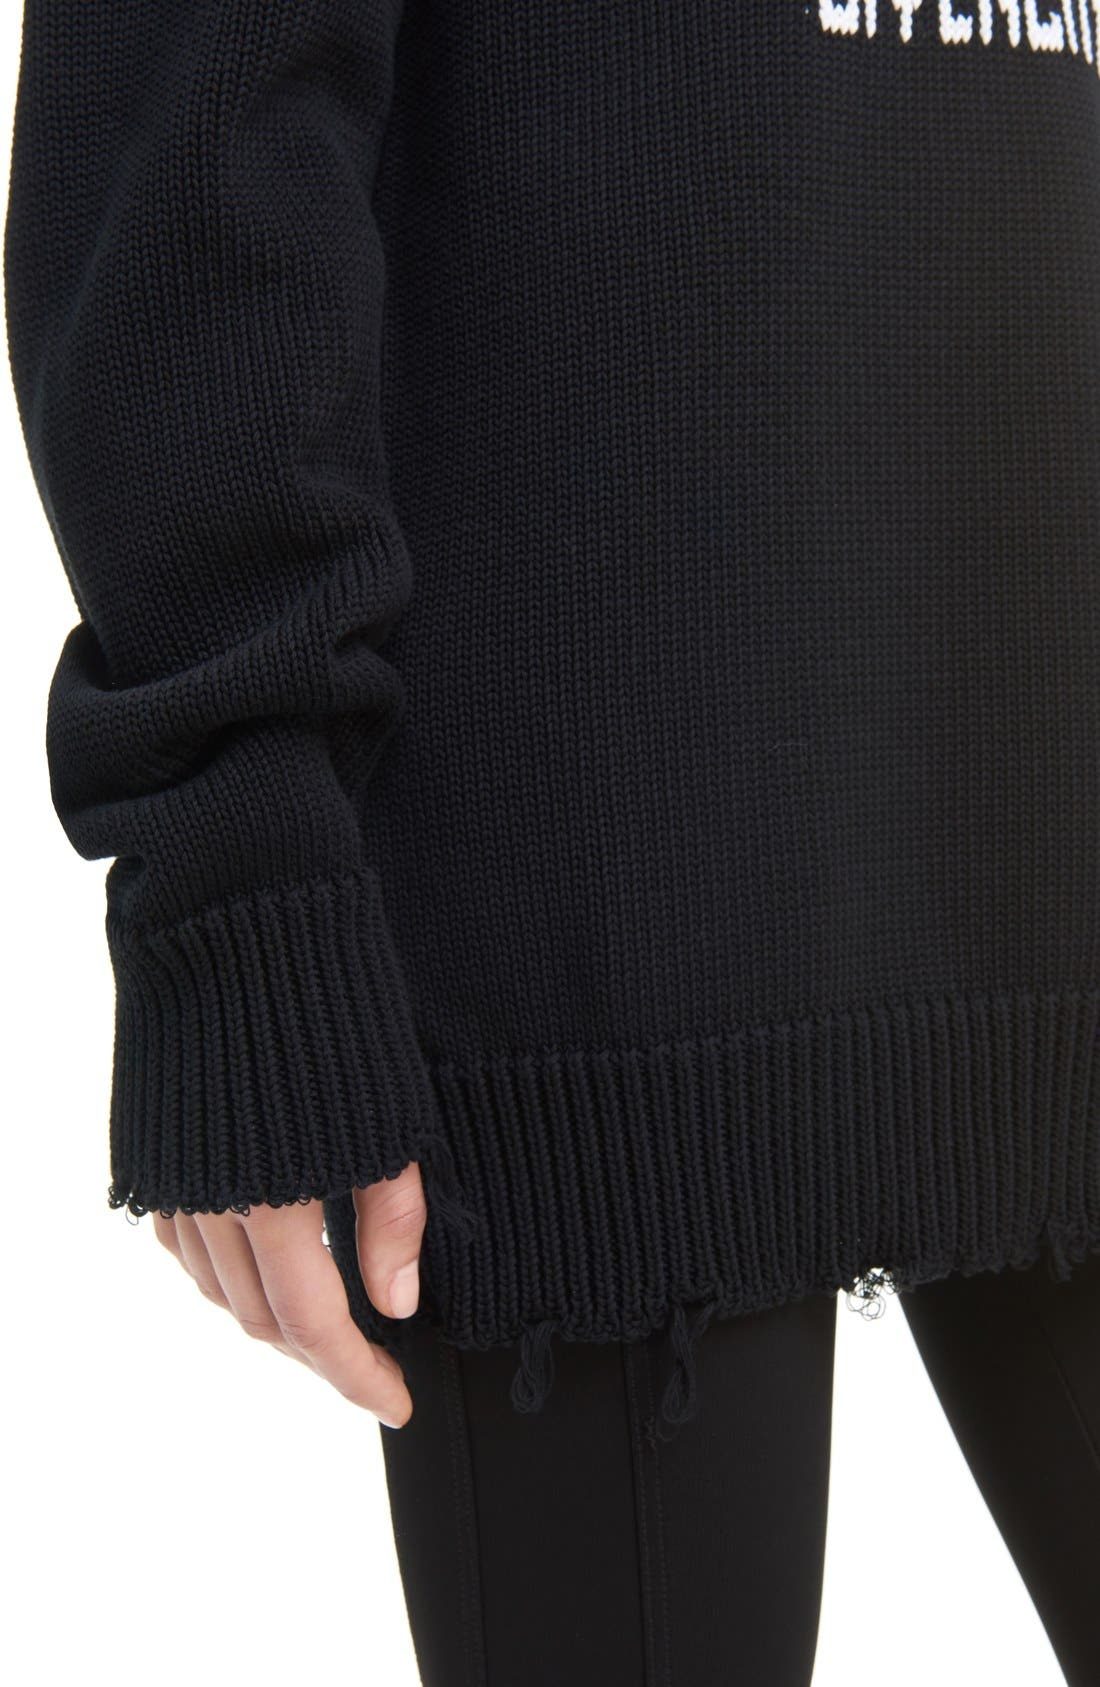 GIVENCHY,                             I Feel Love Cotton Sweater,                             Alternate thumbnail 6, color,                             004